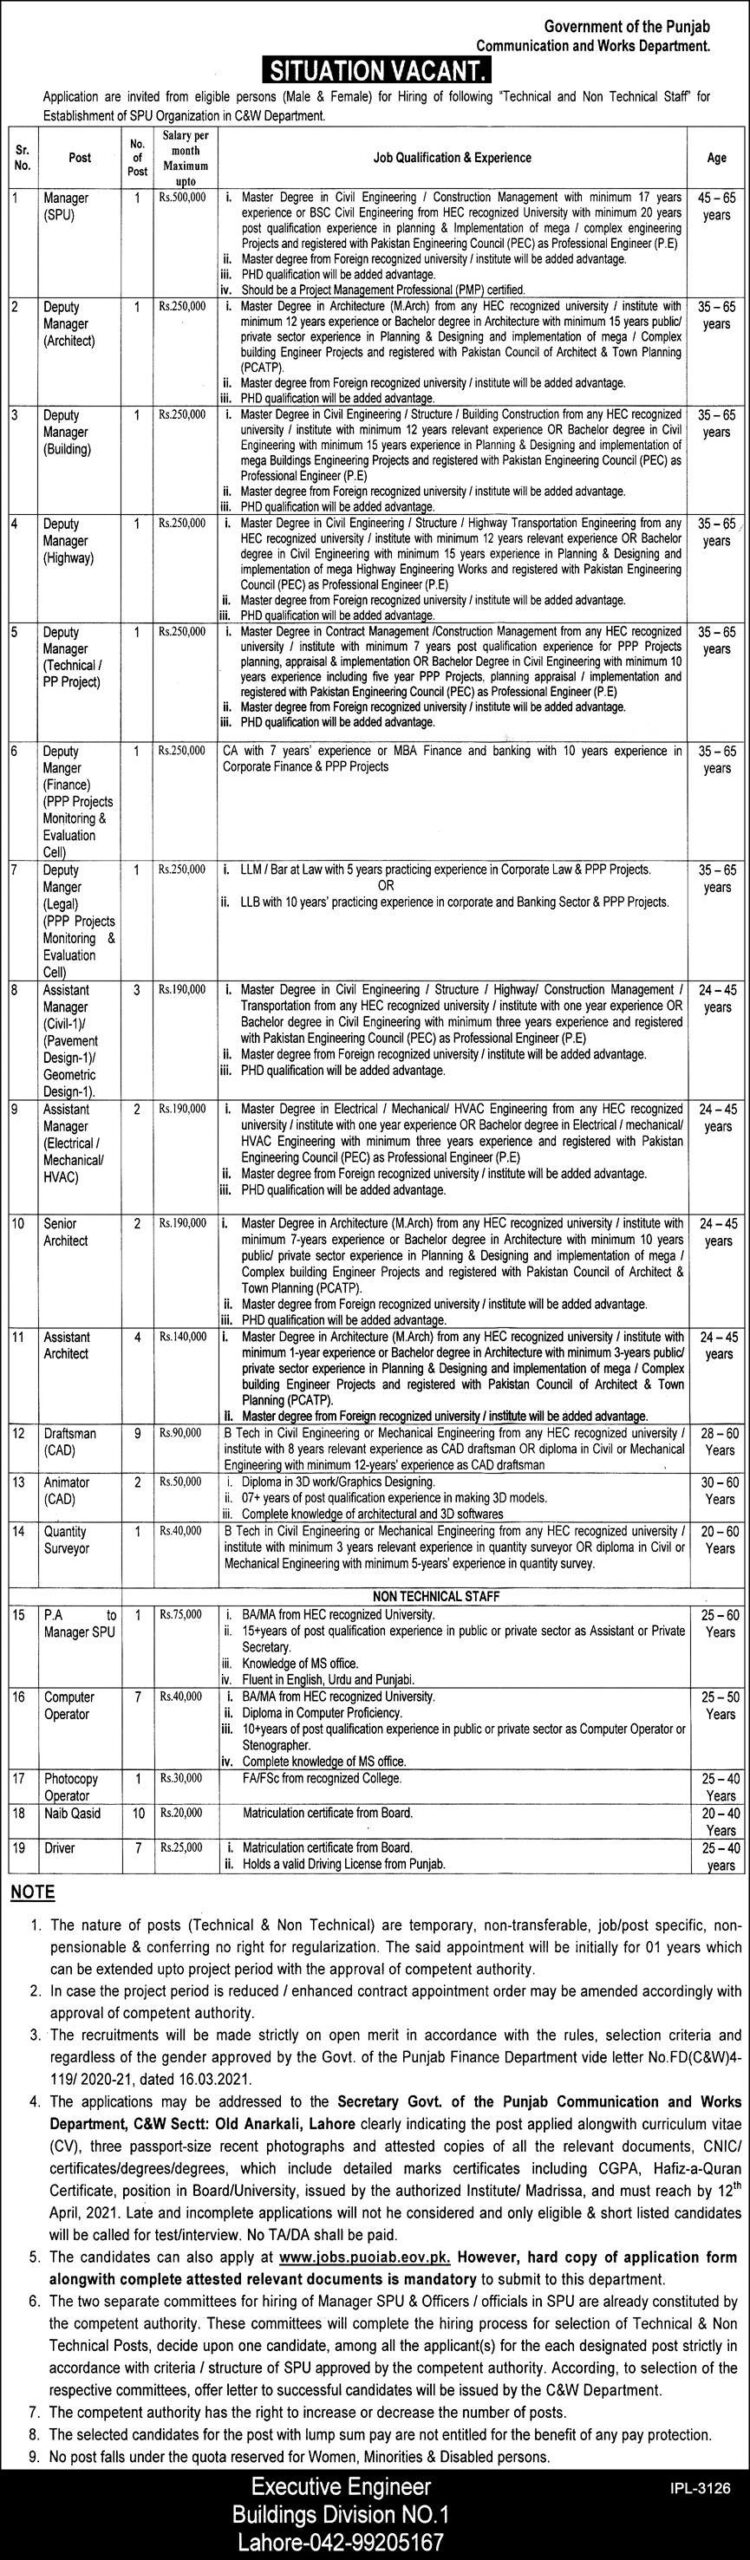 Communication and Works C&W Department Punjab Jobs 2021